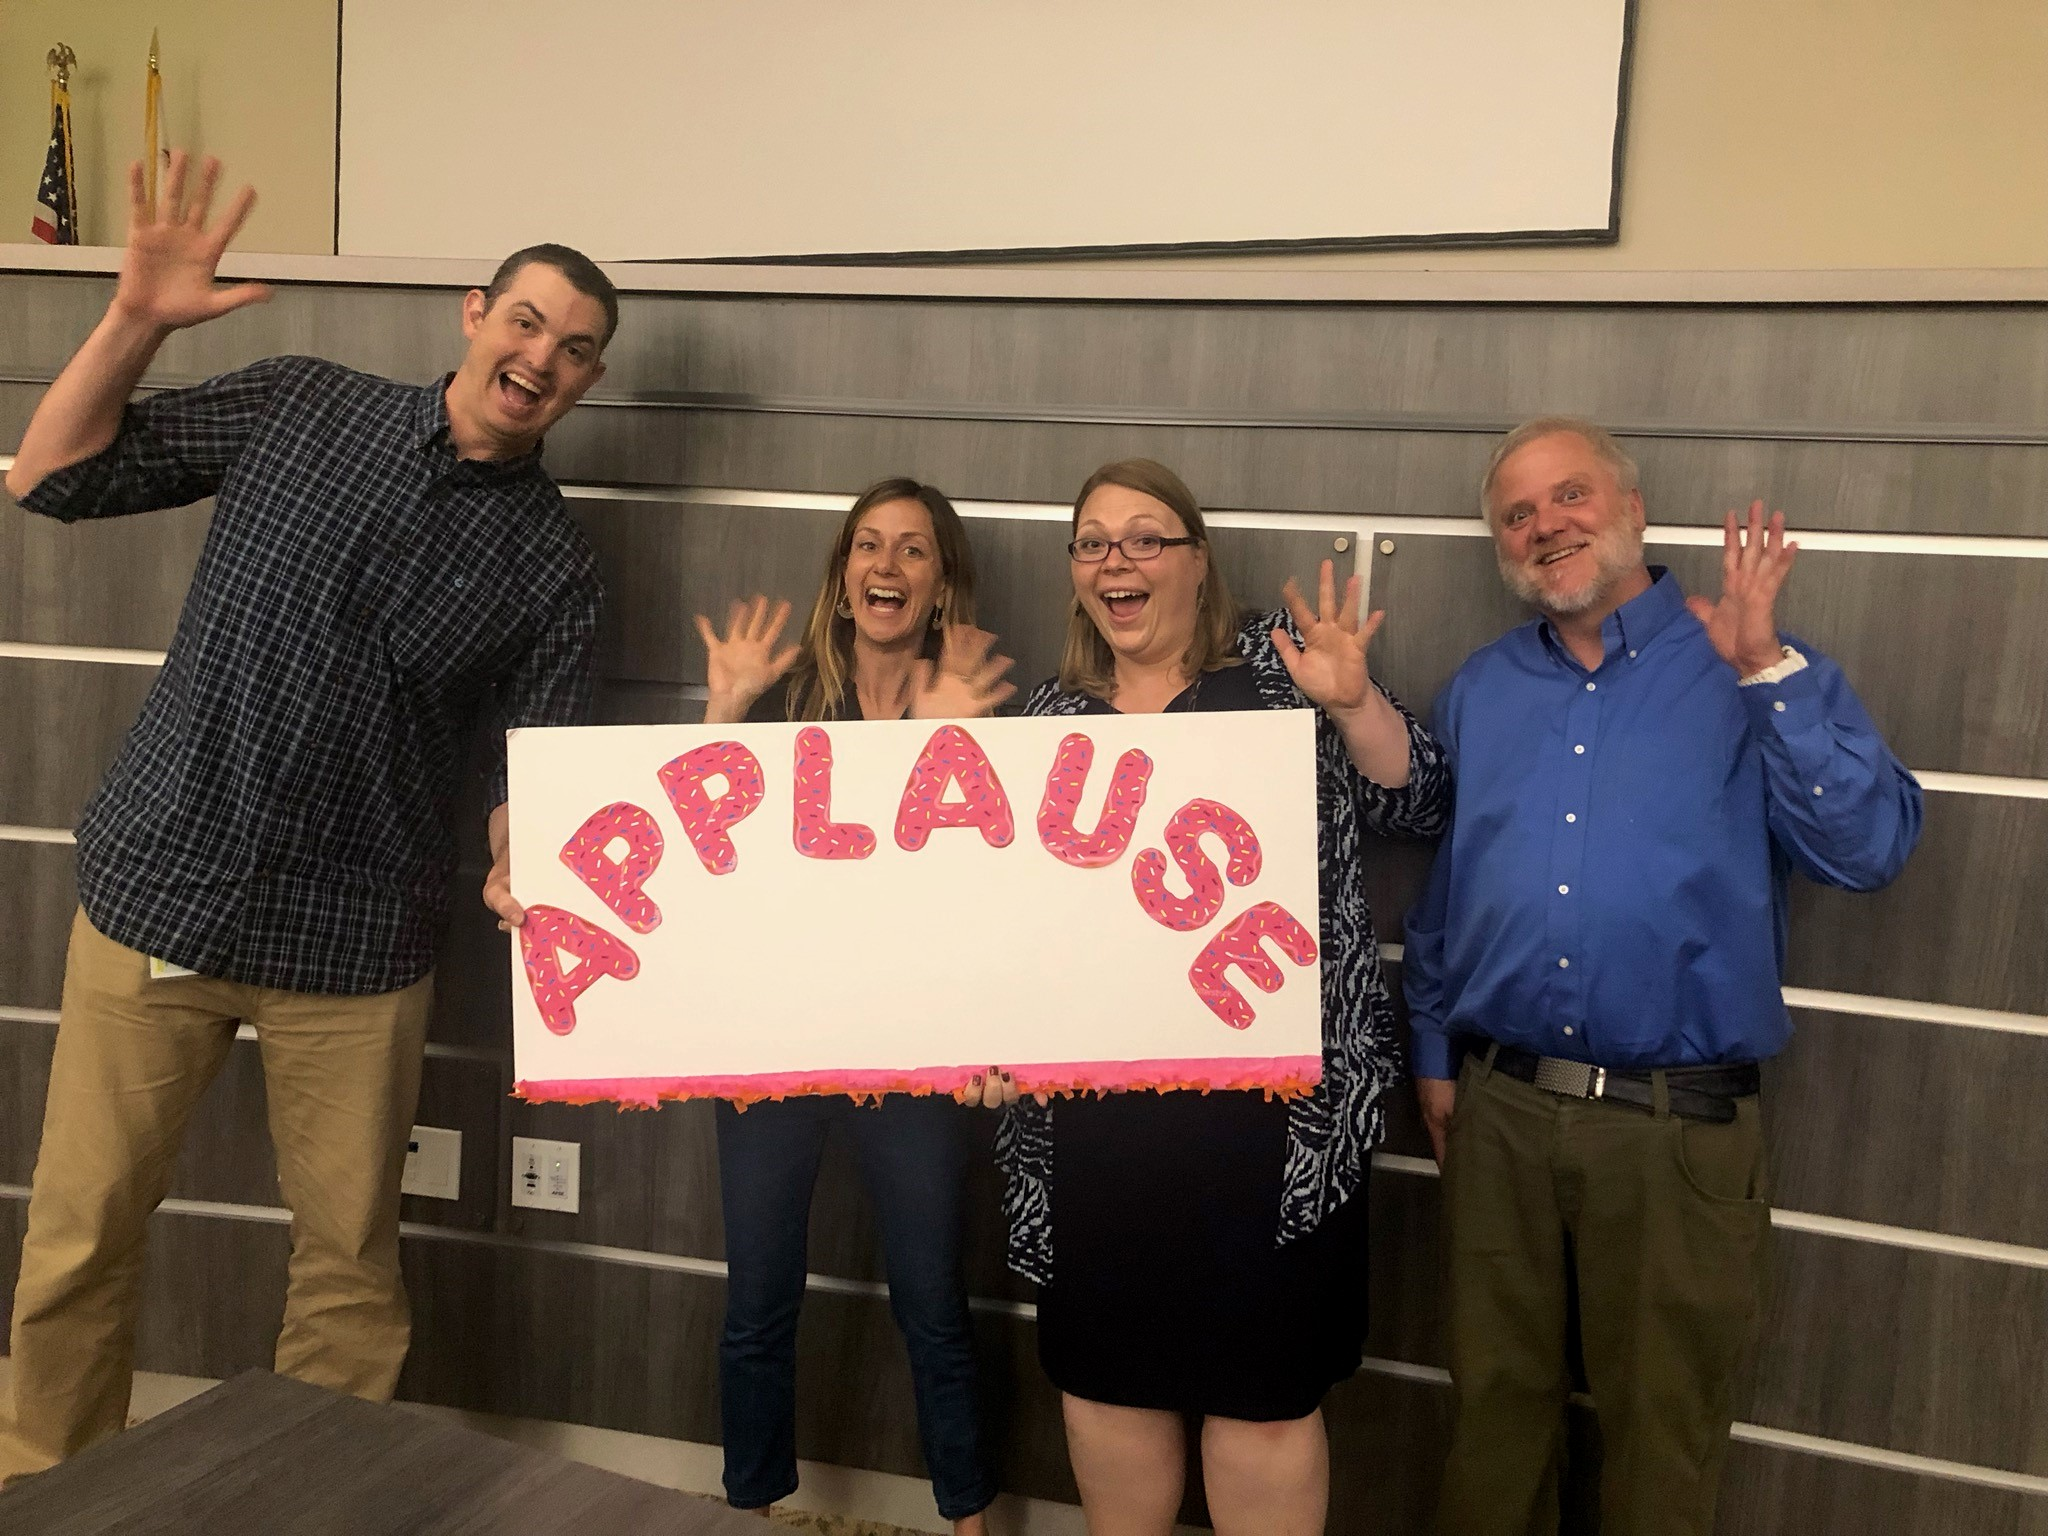 applause sign with people